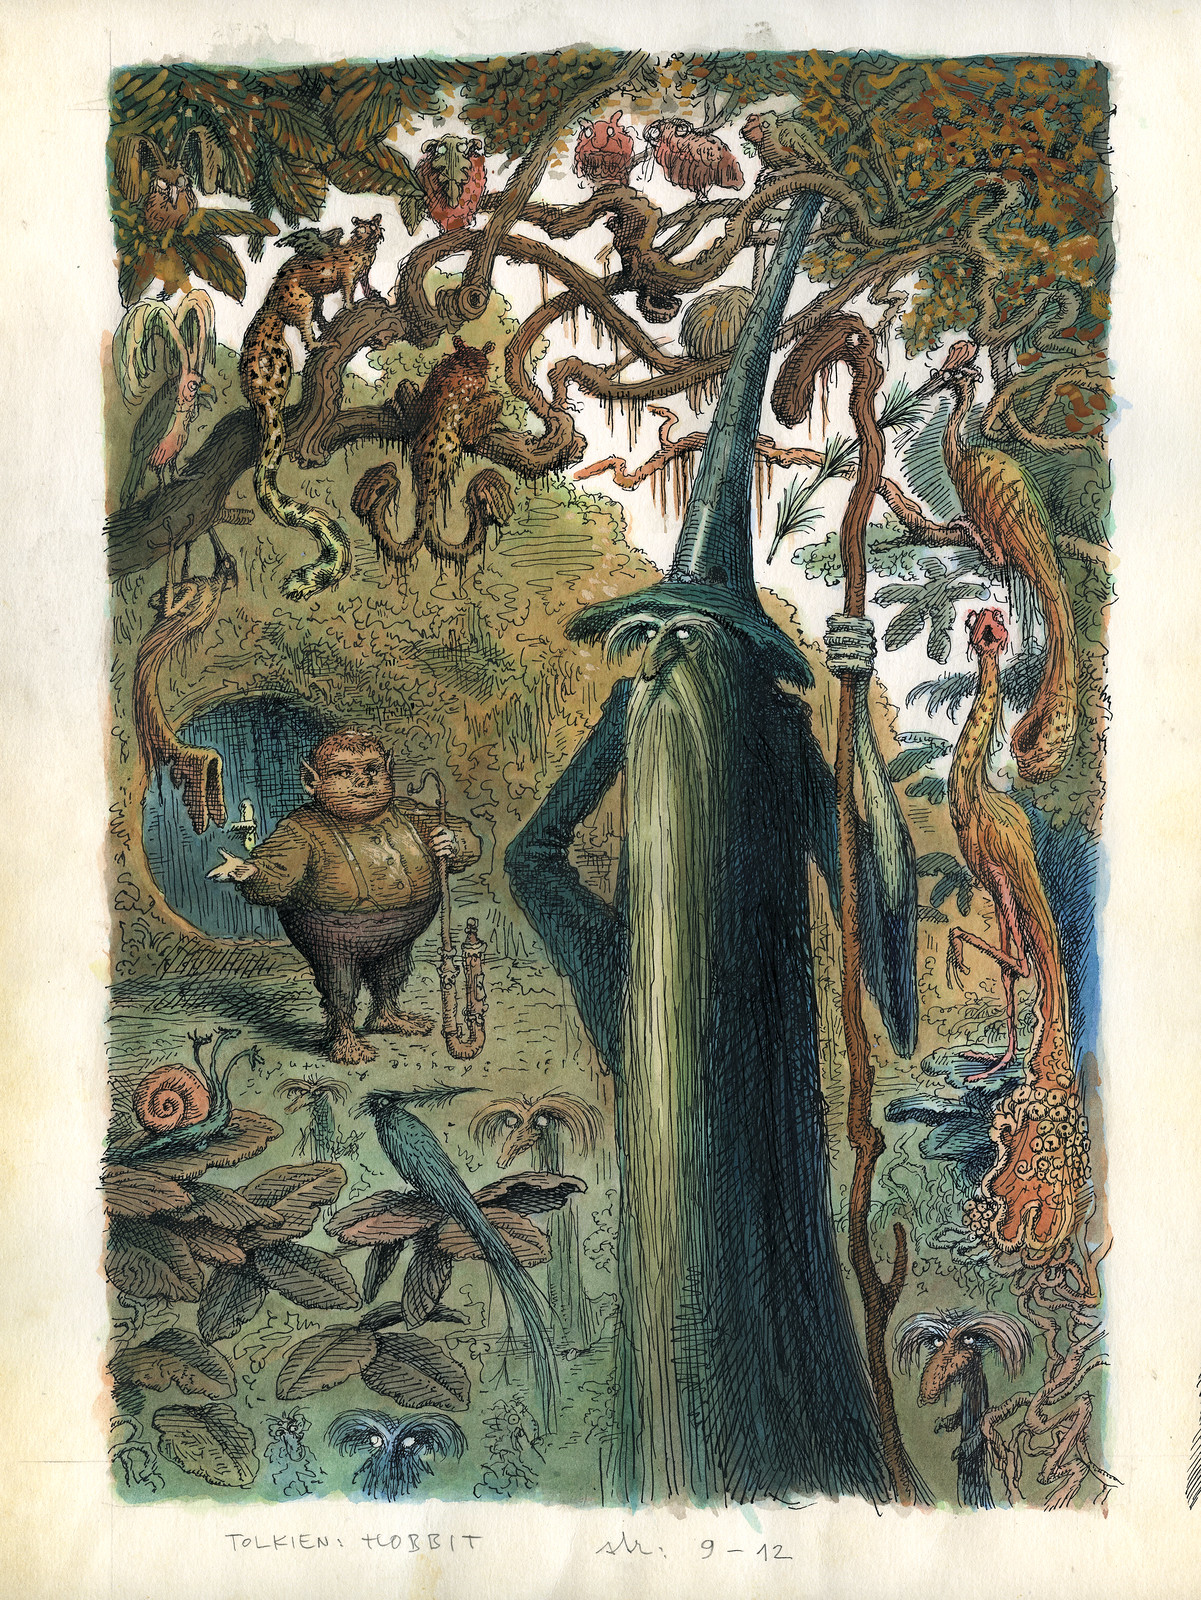 Peter Klucik -The Hobbit, Illustration 12